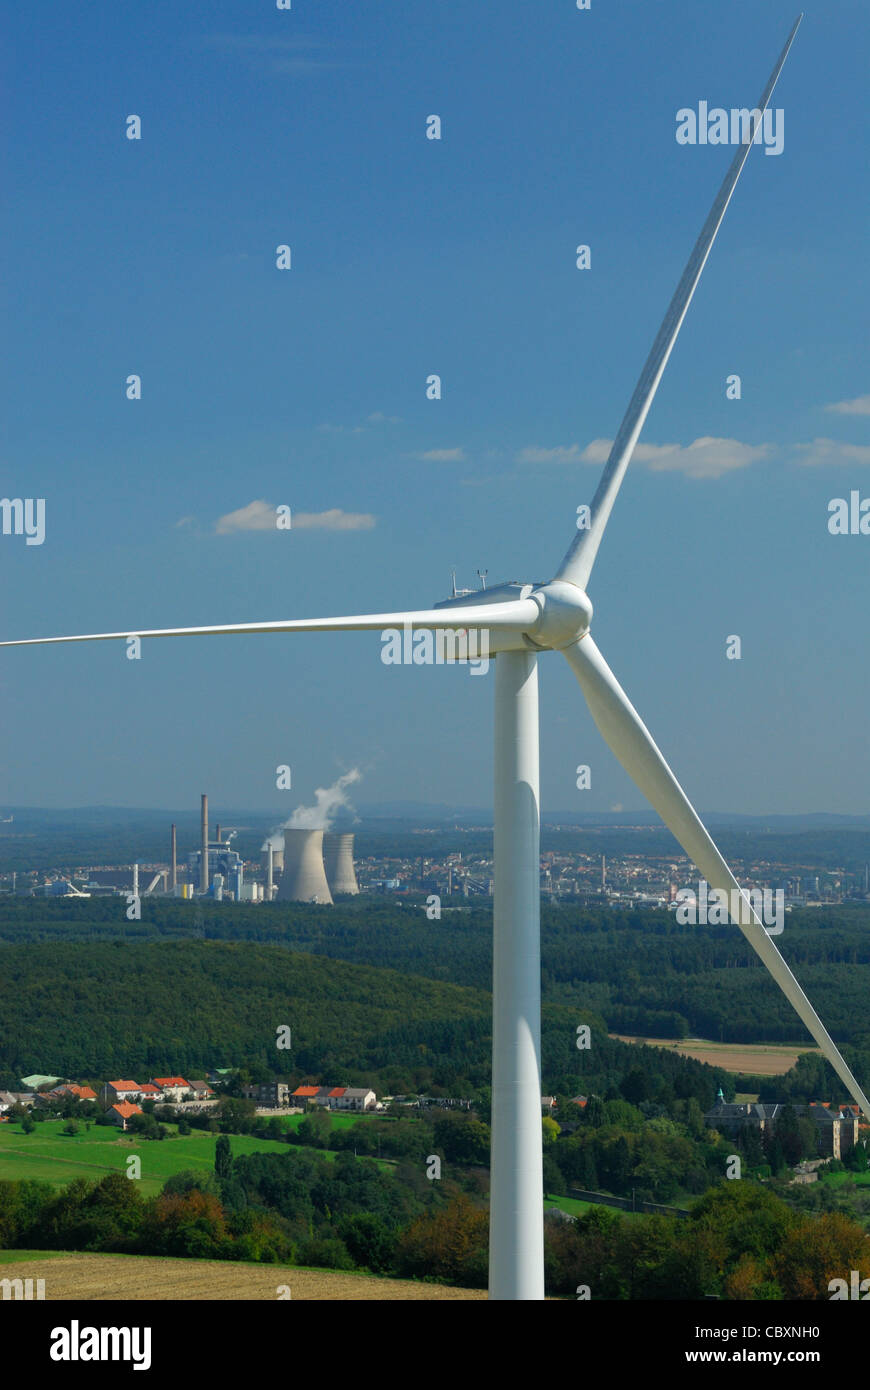 Aerial View Of An Alternator And Propeller Of A Wind Turbine With On Stock Photo Alamy